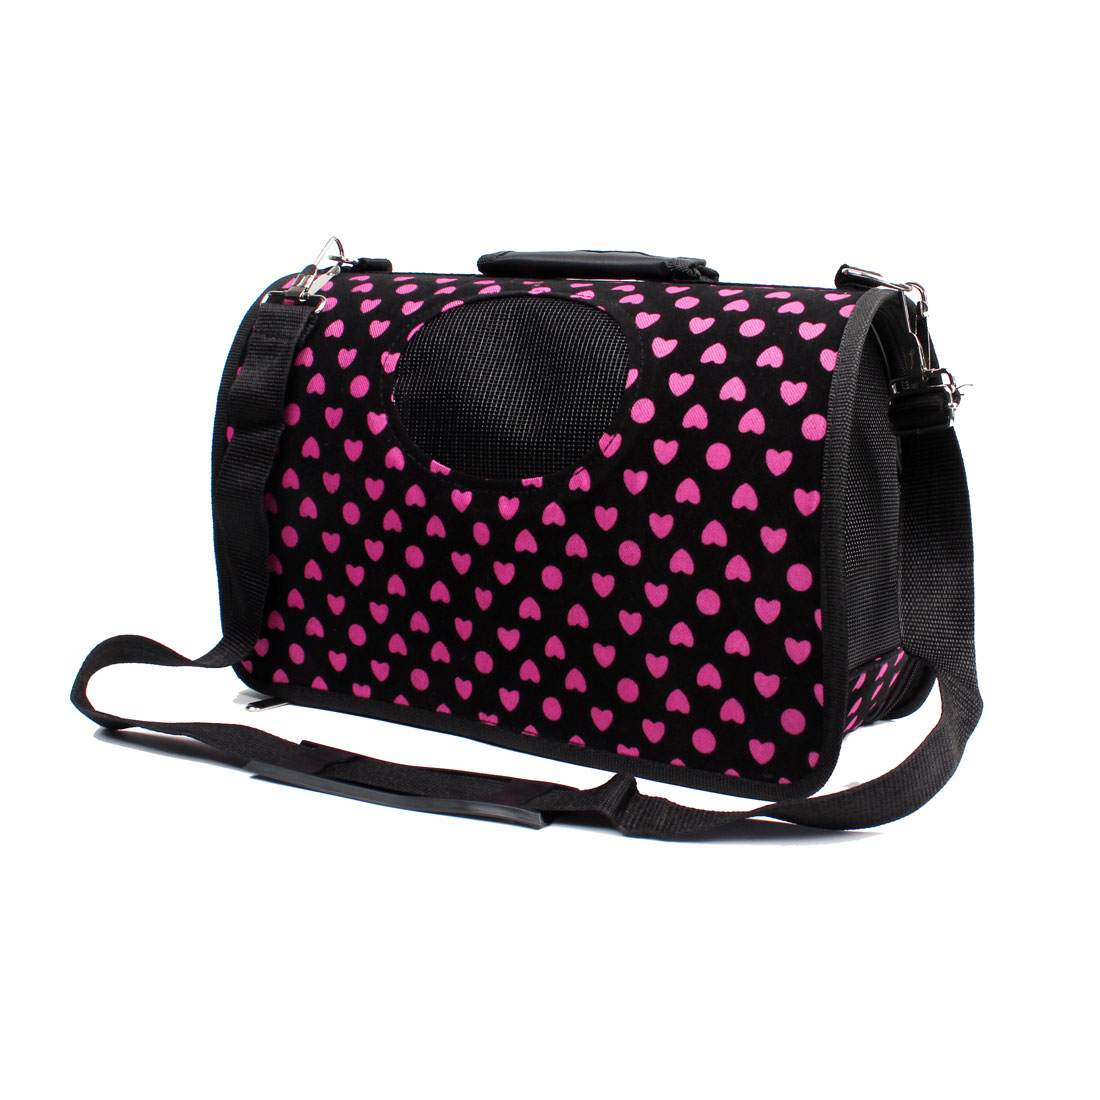 Dot Heart Pattern Dog Puppy Travel Shopping Carrier Carry Bag Black Pink